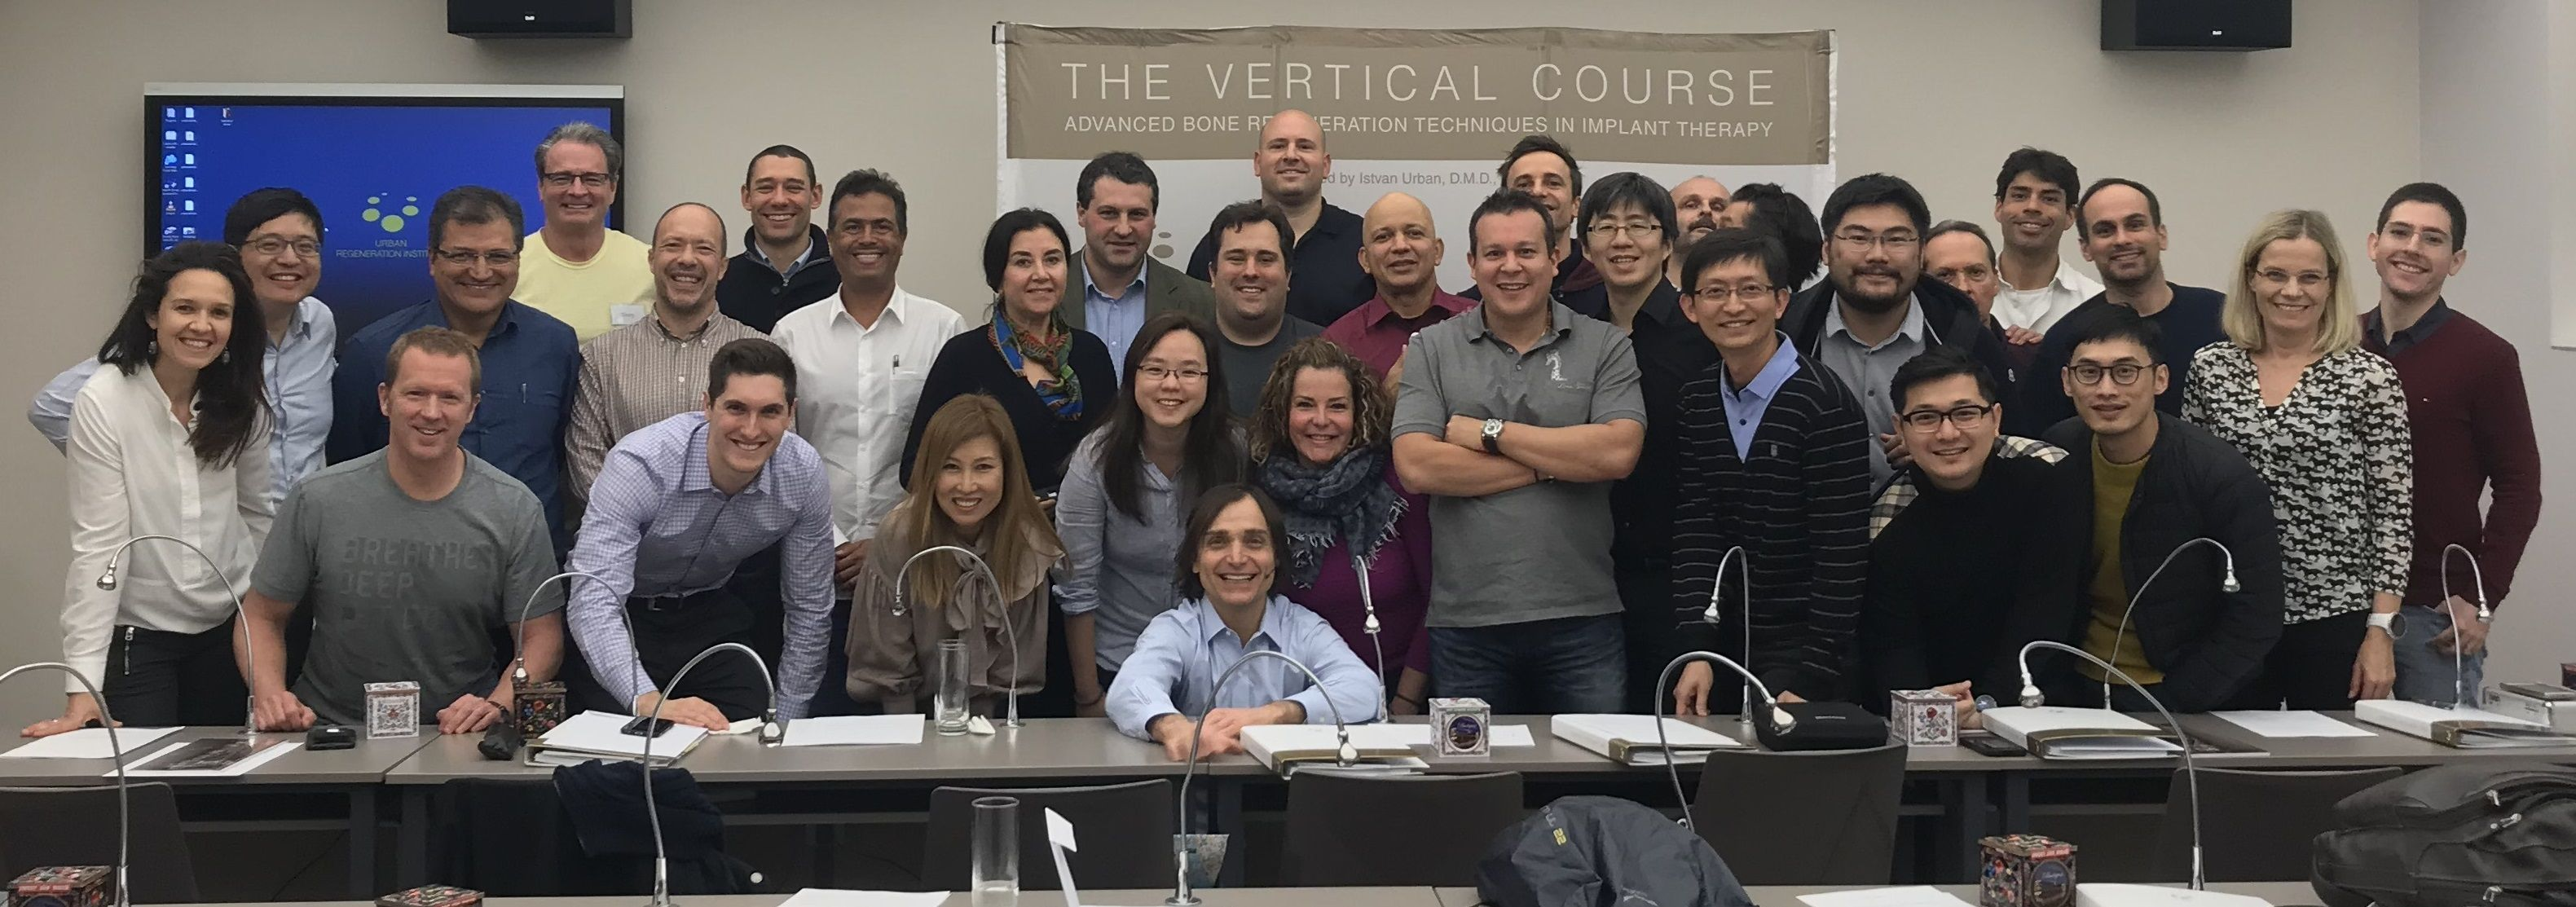 Dr. Cross at The Vertical Course